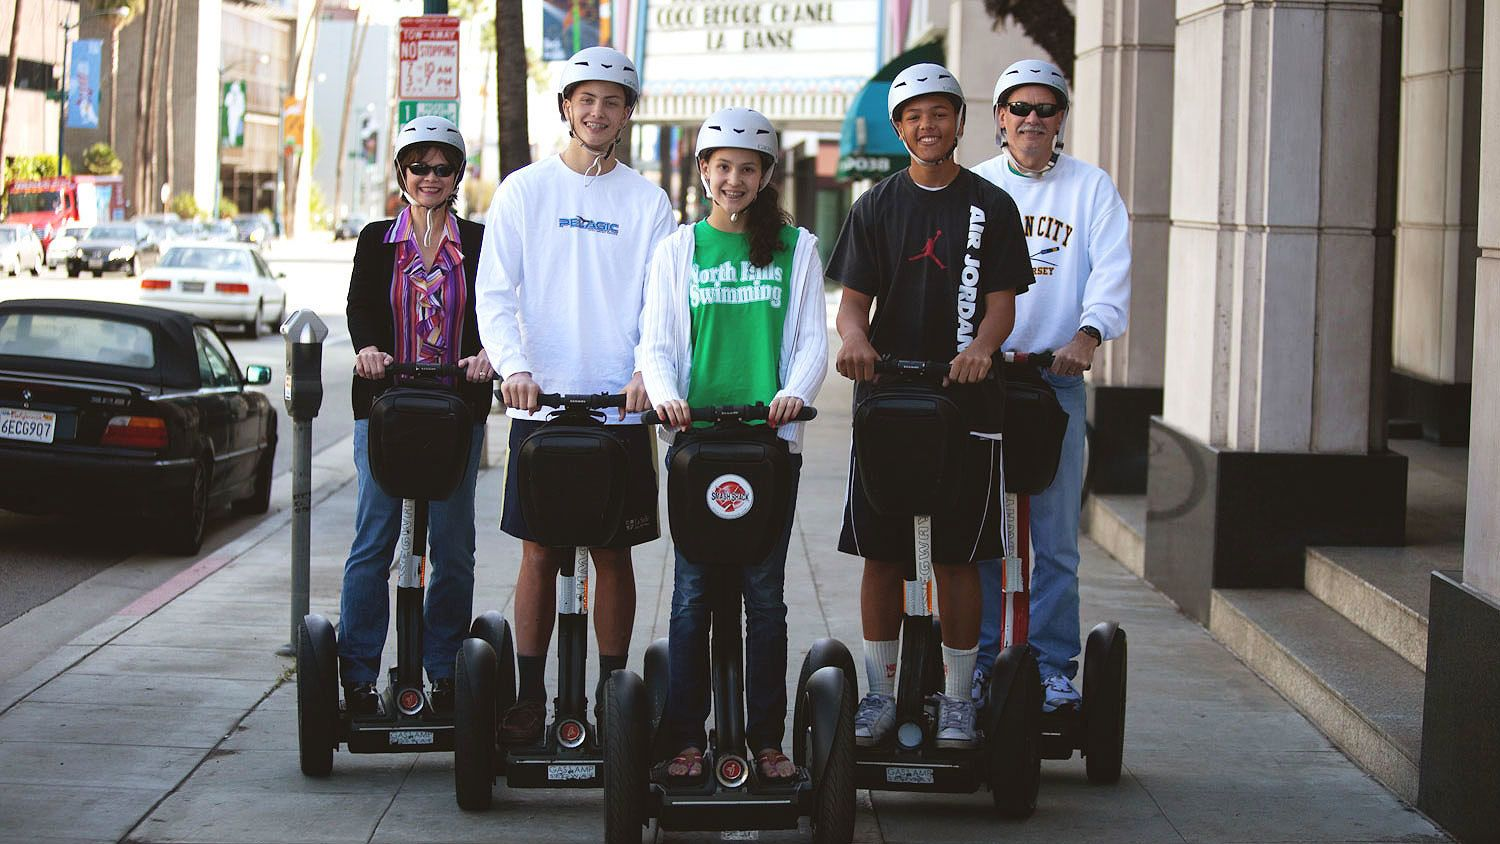 Segway riders on a street in Beverly Hills.